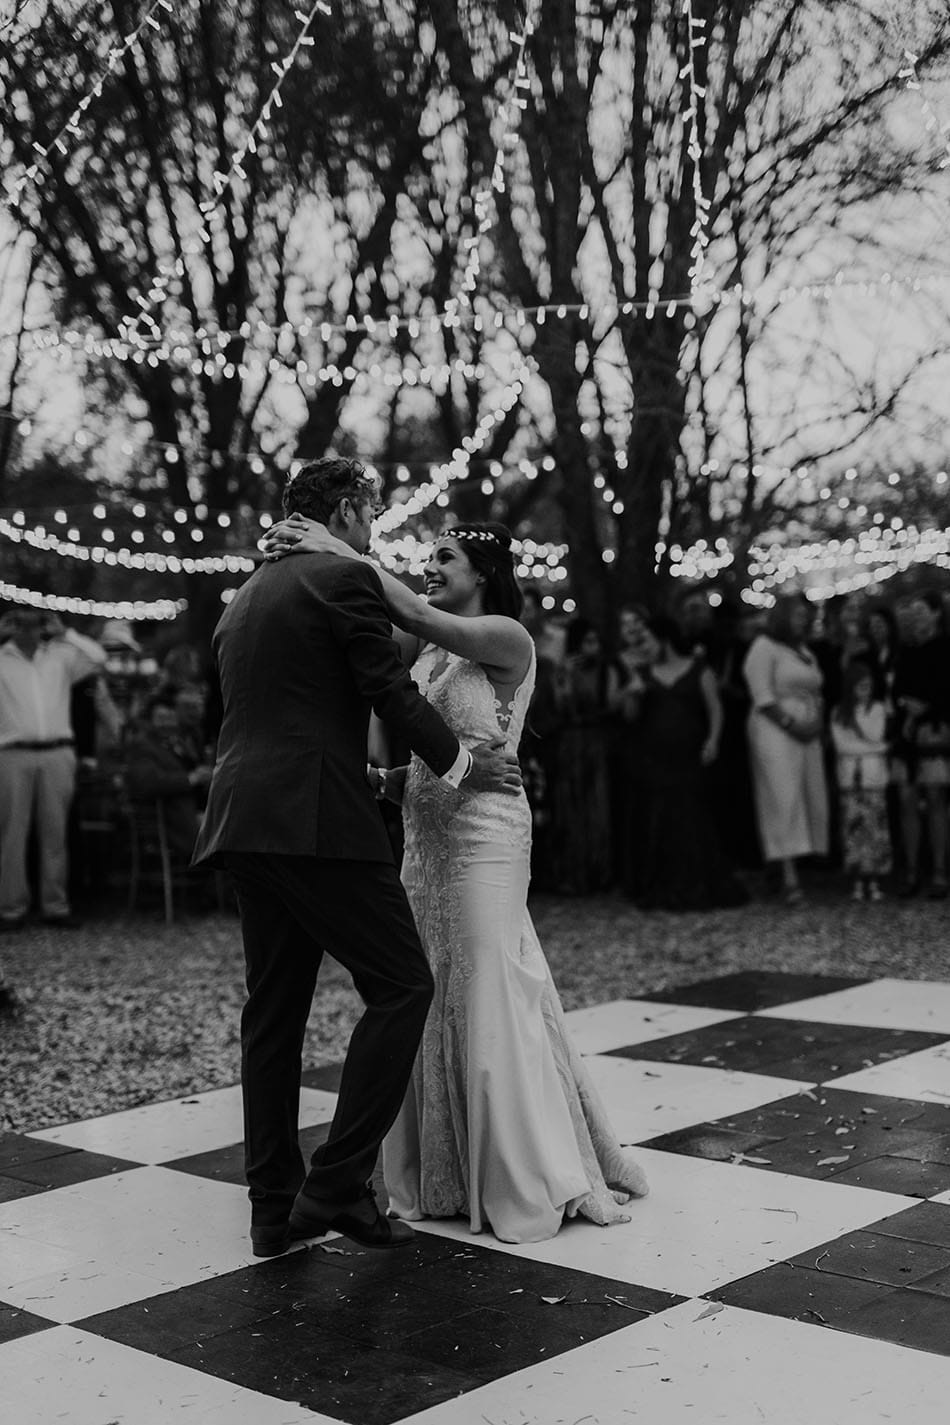 Woodlands wedding celebration - Parklands Farm - Harare, Zimbabwe - Destination Wedding Photographer - Duane Smith Photography - Charli & Nigel - Married00216